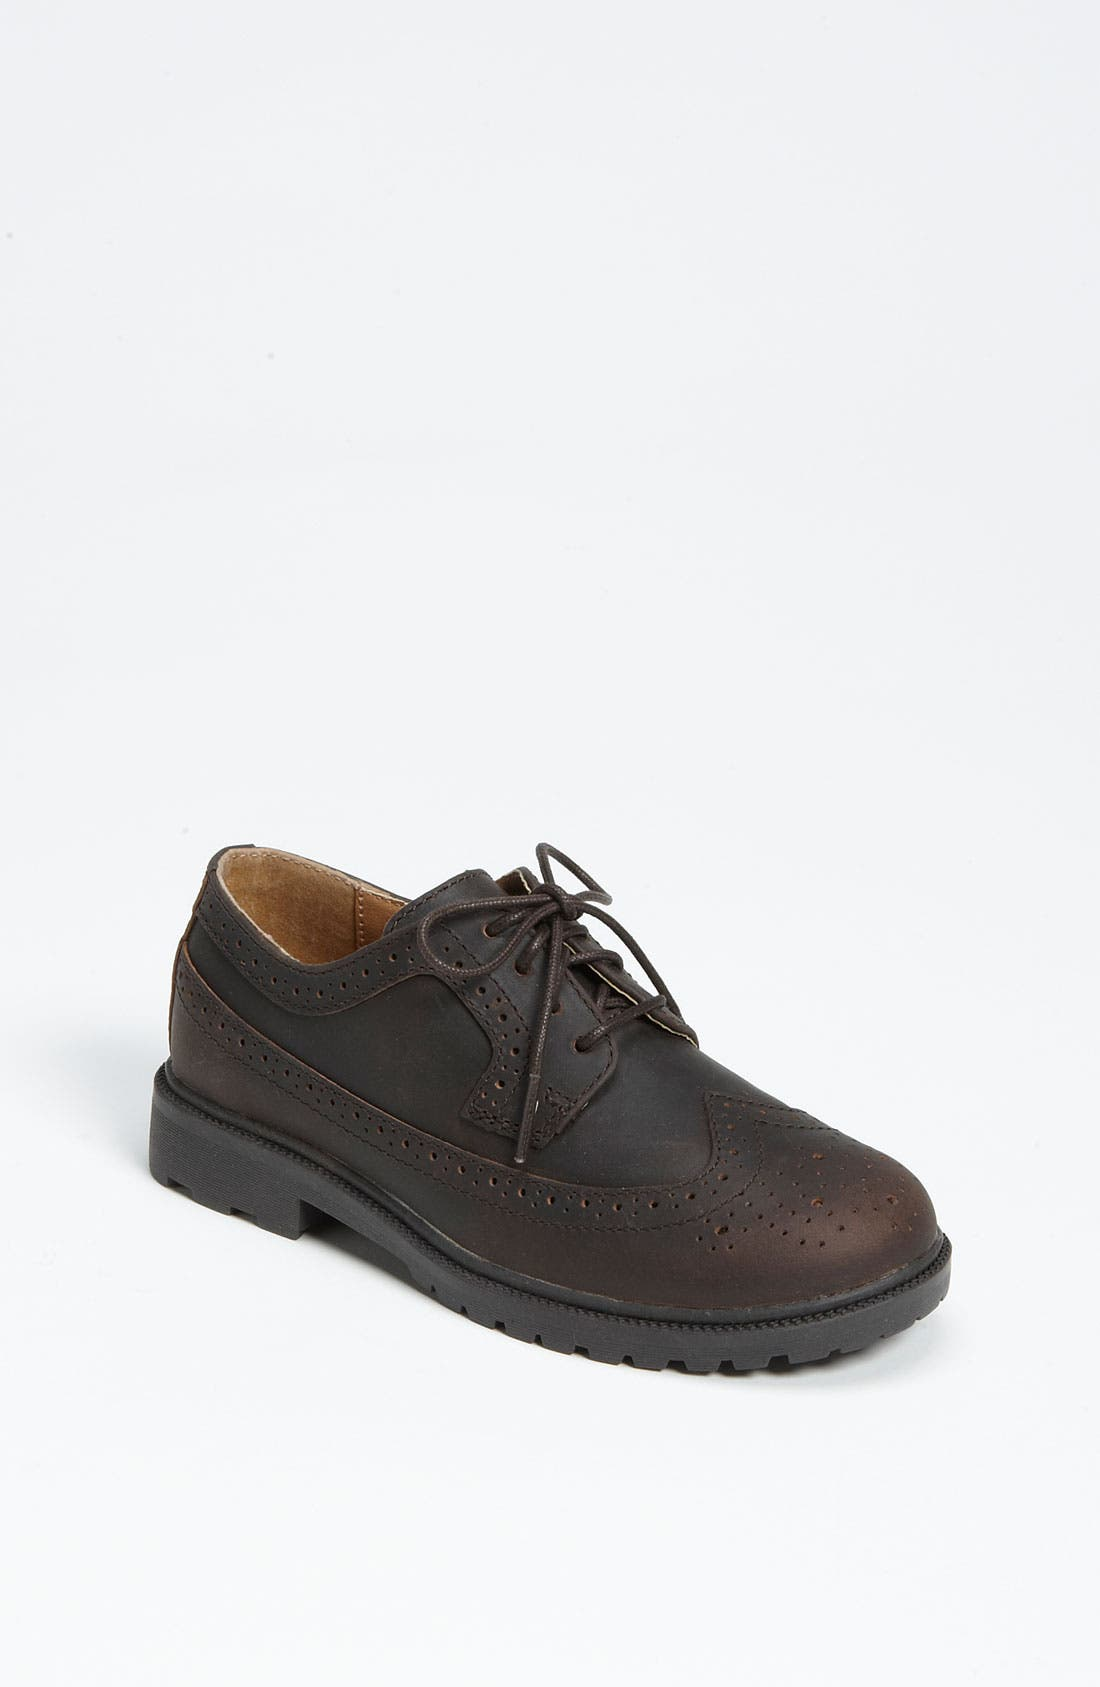 Alternate Image 1 Selected - Florsheim 'Valco' Oxford (Toddler, Little Kid & Big Kid)